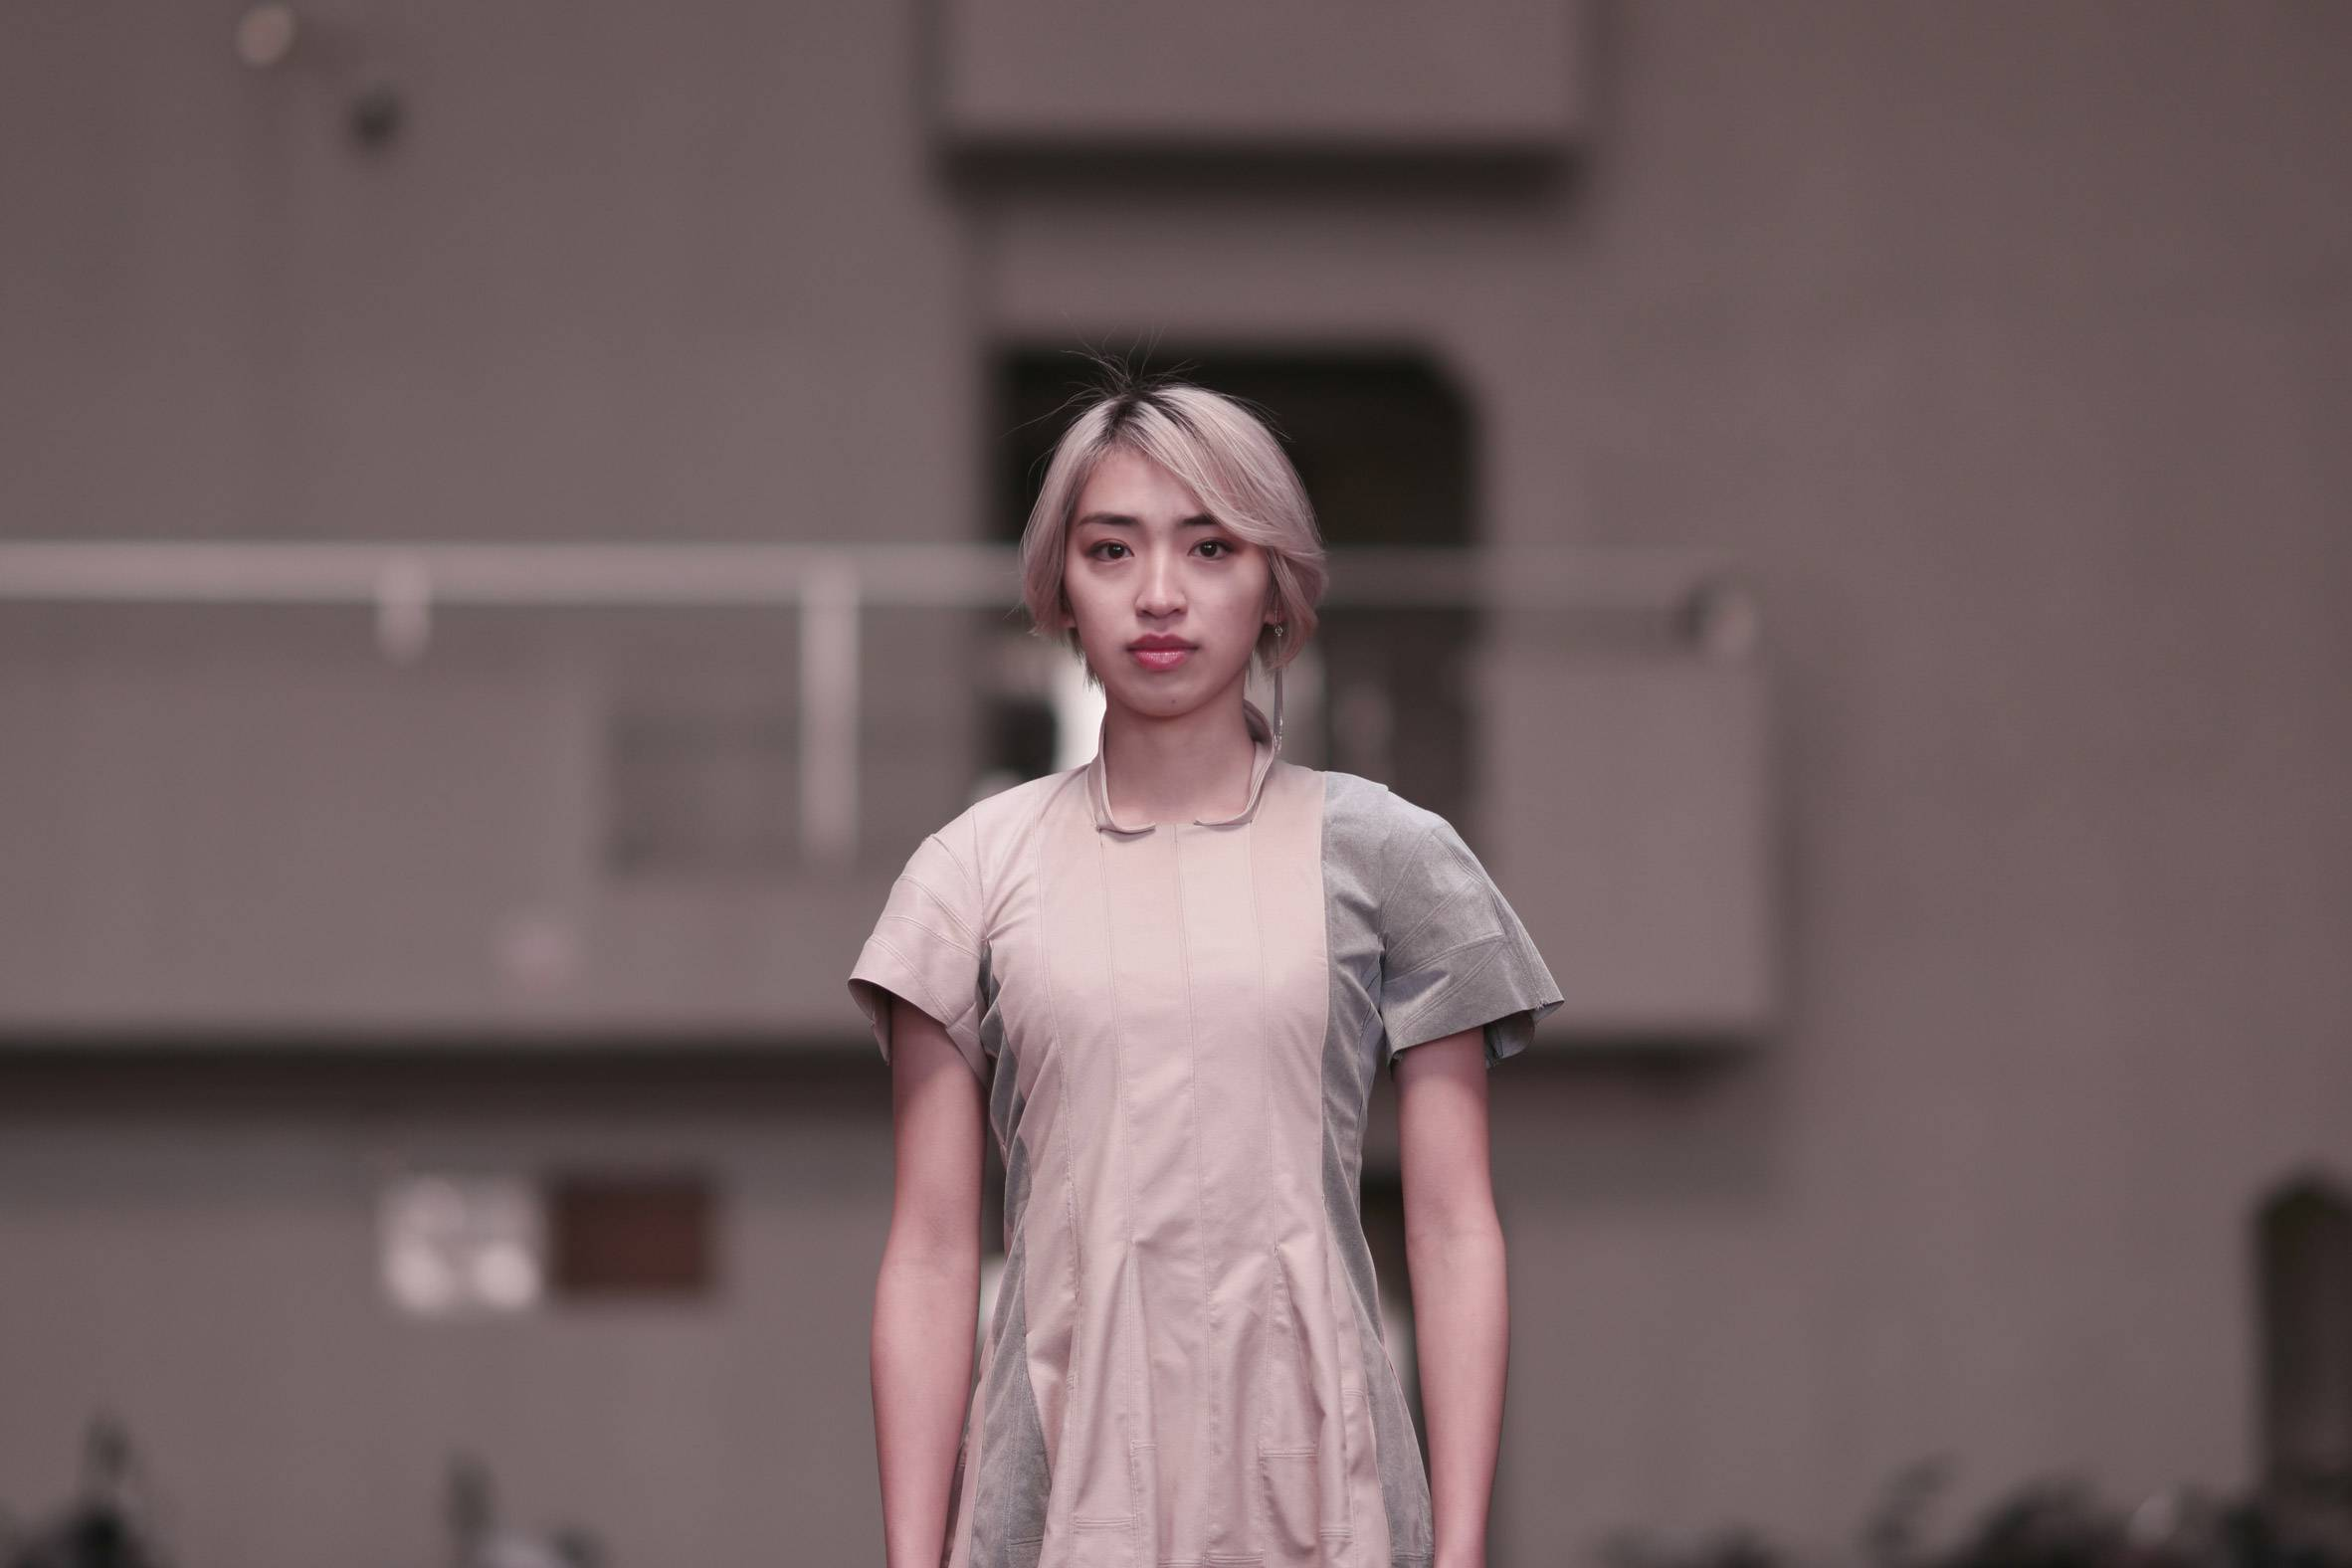 Head and torso of a blonde woman with short hair wearing a dress